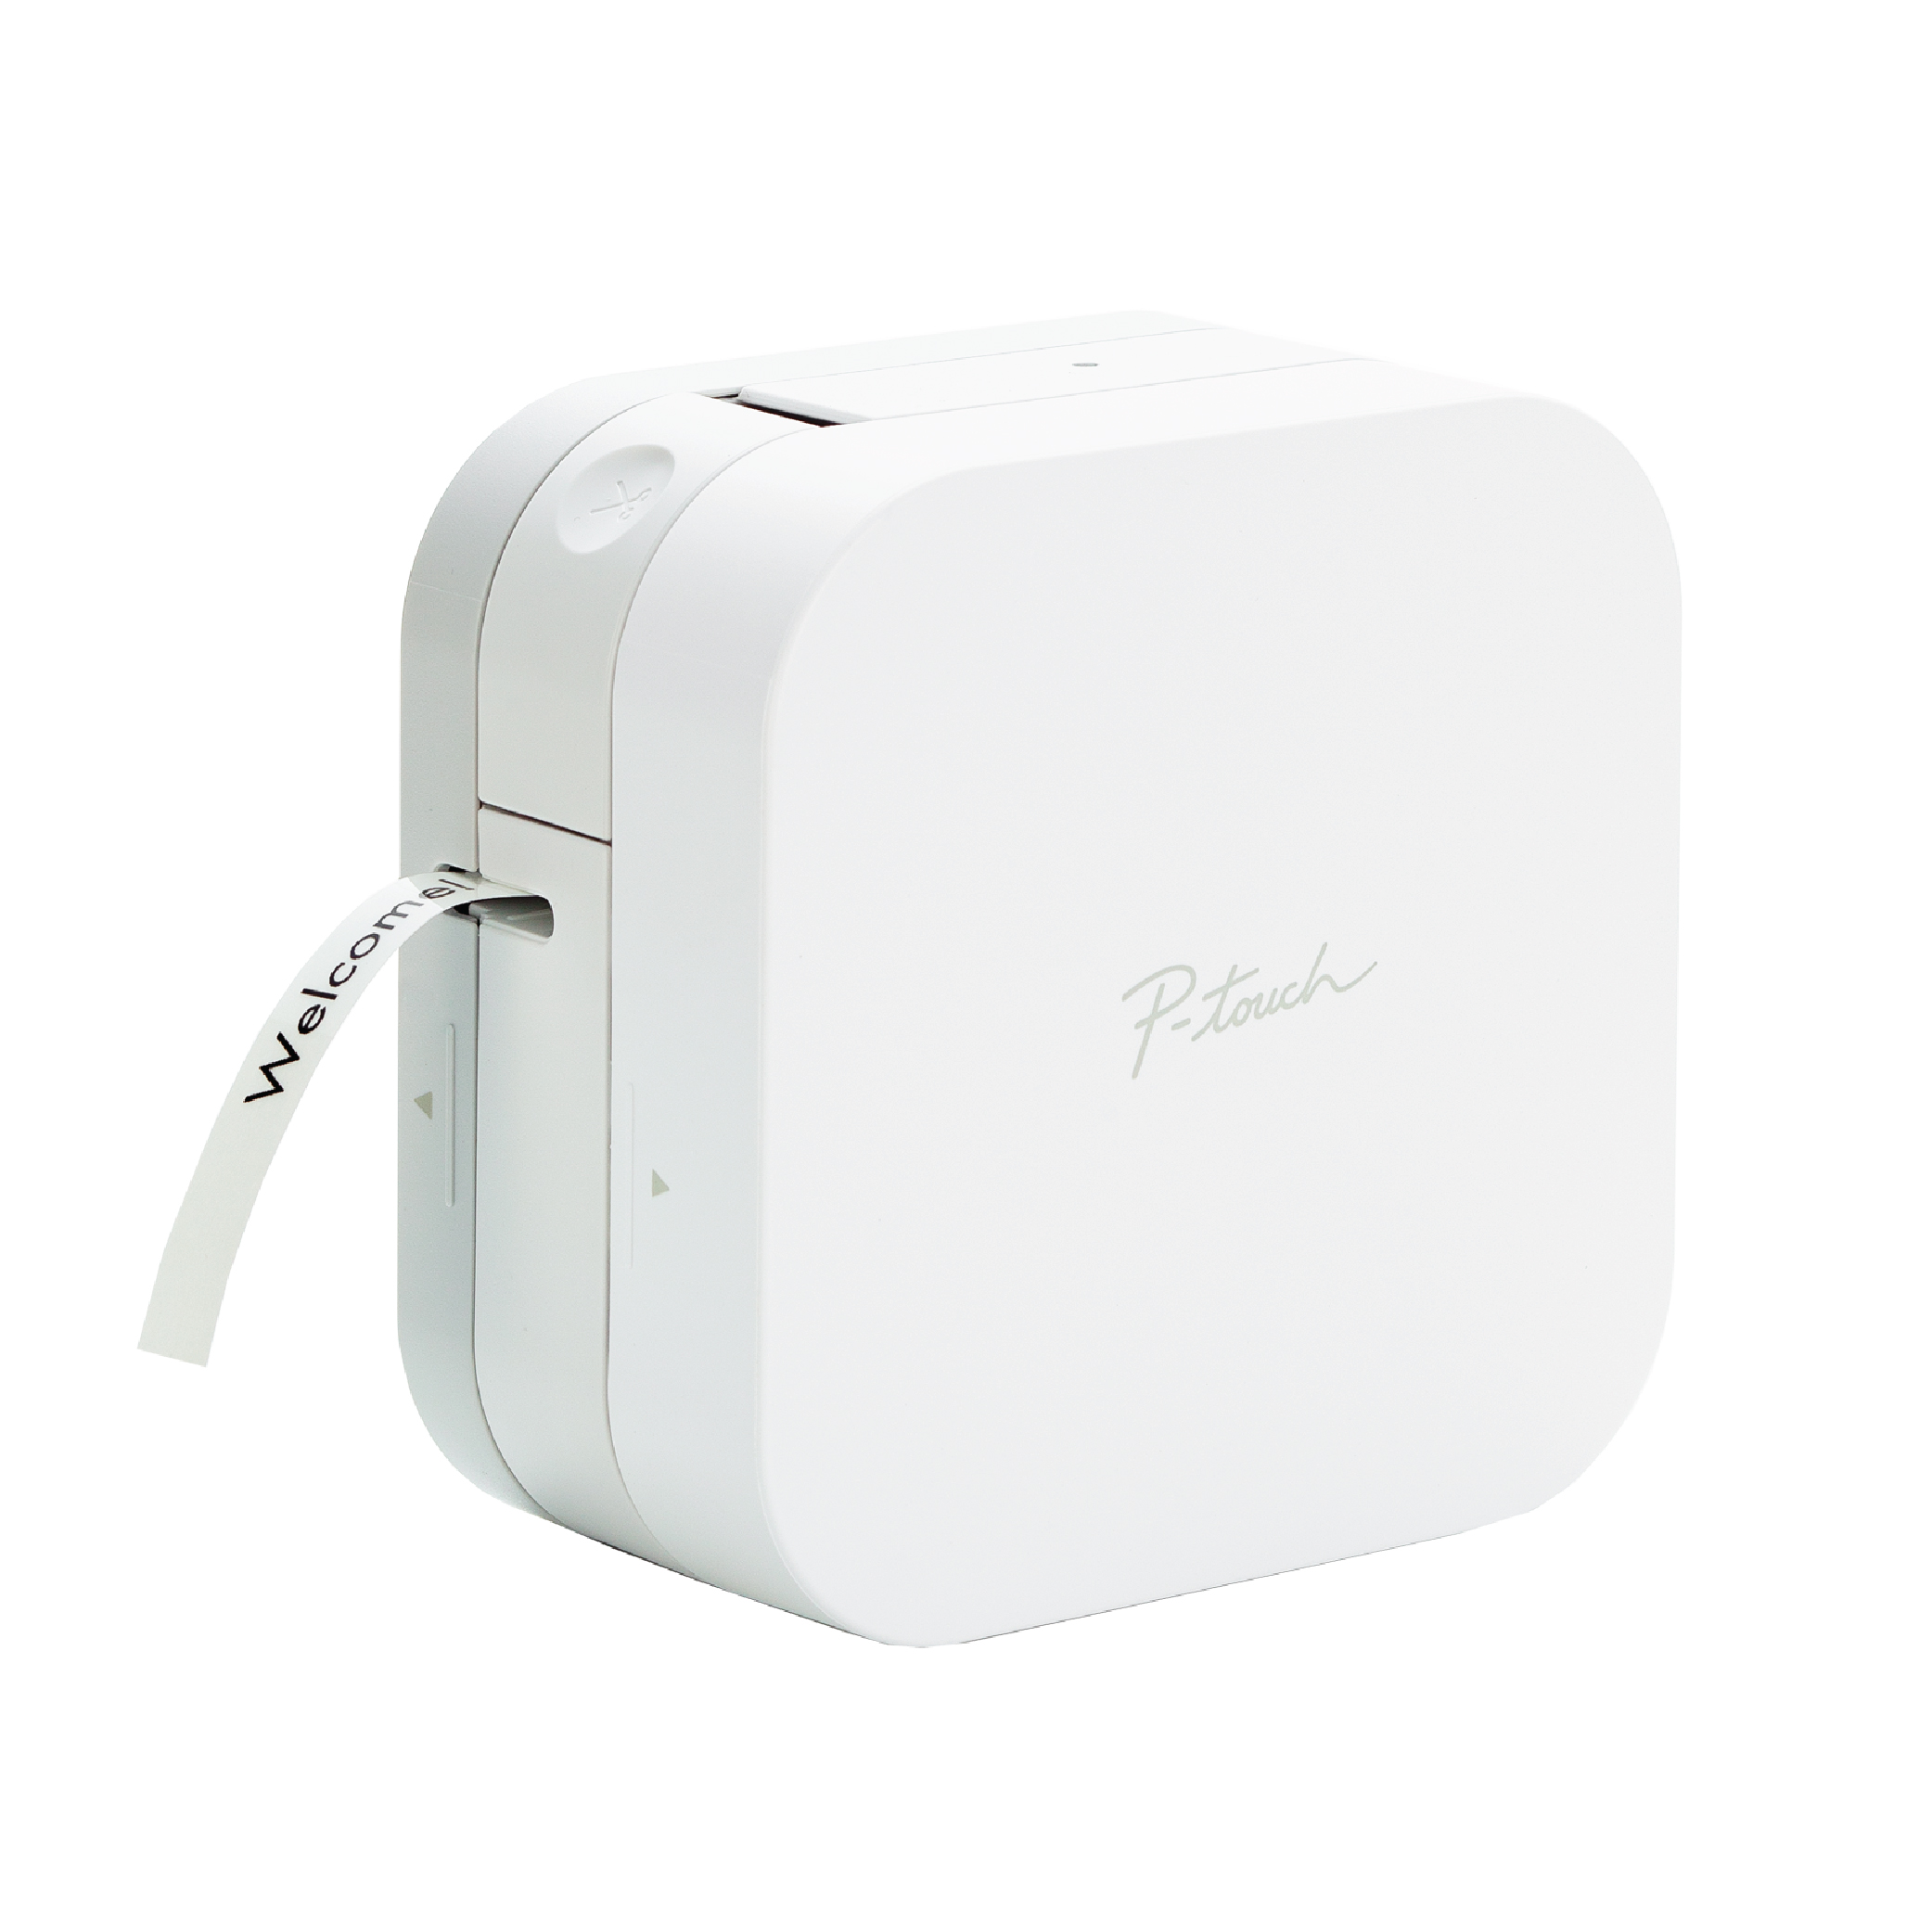 Brother P-touch CUBE Smartphone Label Maker with Bluetooth Wireless Technology White by Brother Industries, Ltd